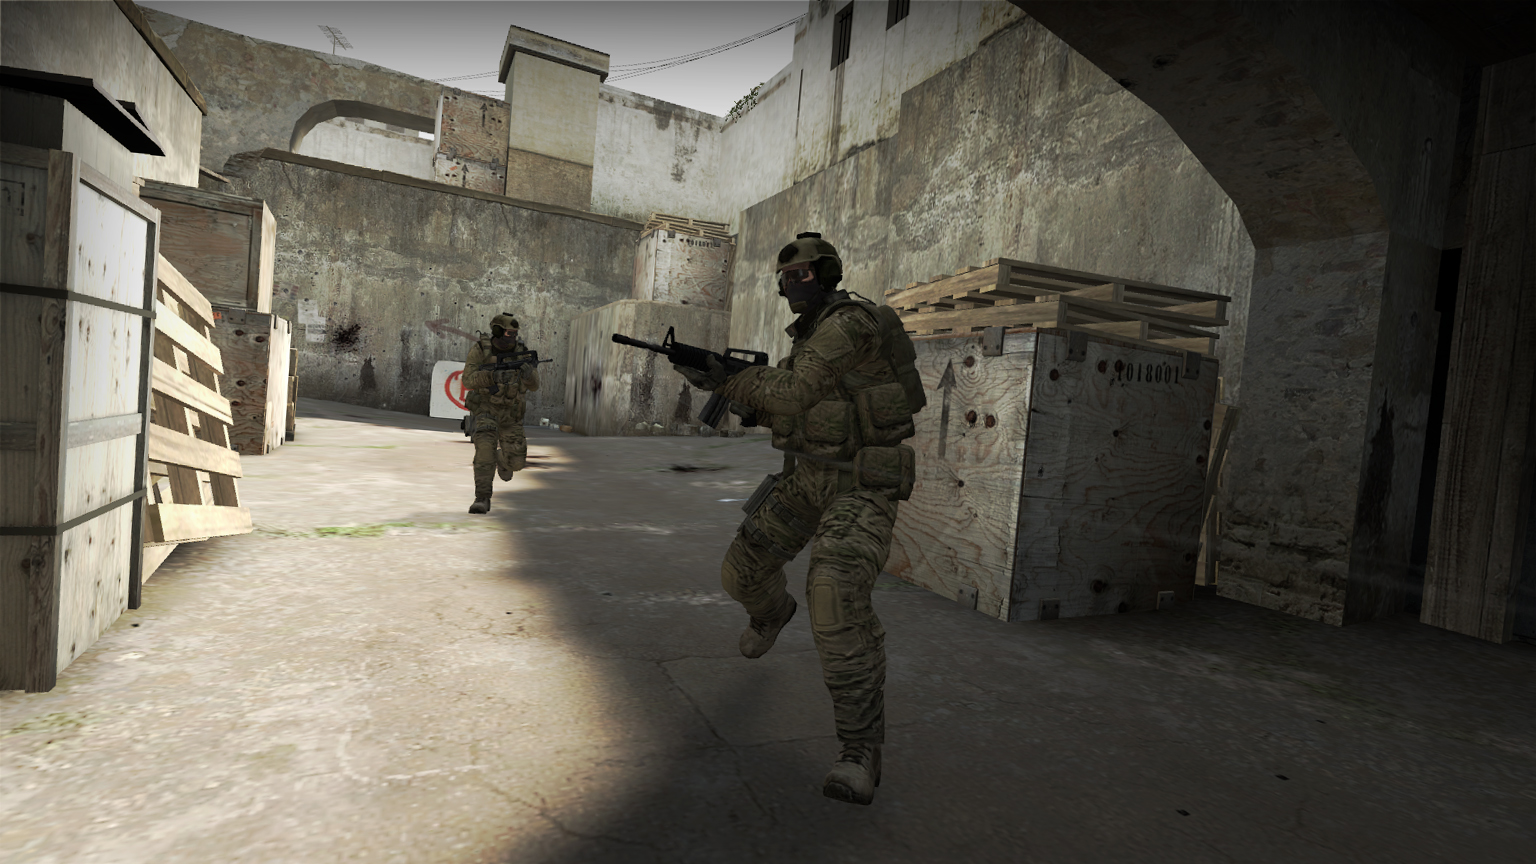 Catch Up With Csgo Supreme And Find Yourselves Among The Best Players!